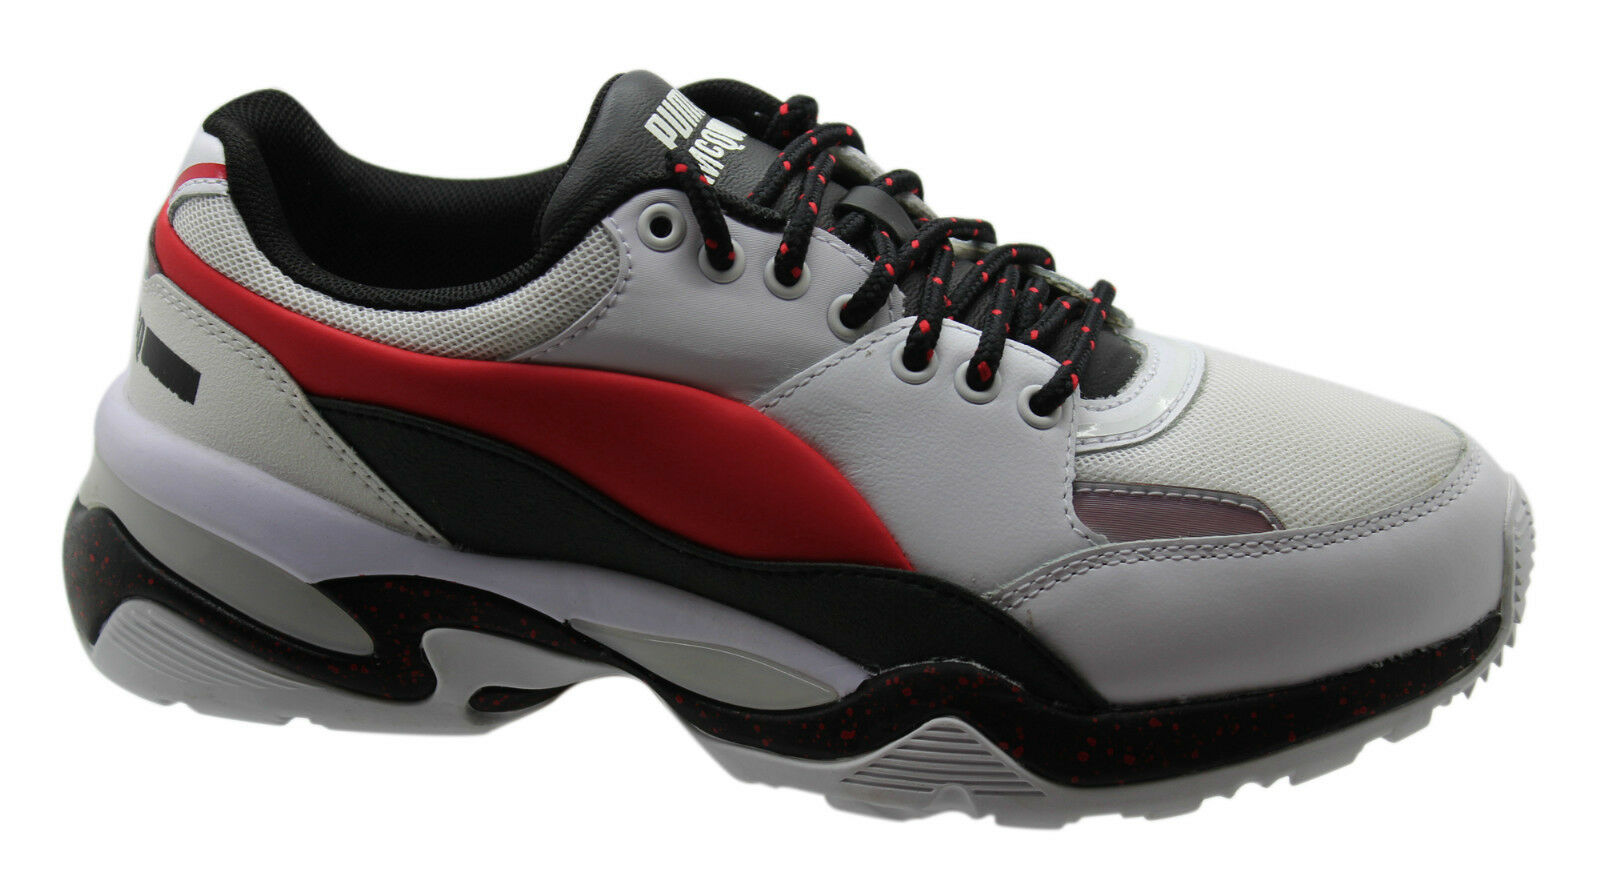 94bc30dc0887 Puma Alexander McQueen MCQ Tech Runner Lo Mens Lace up Trainers ...